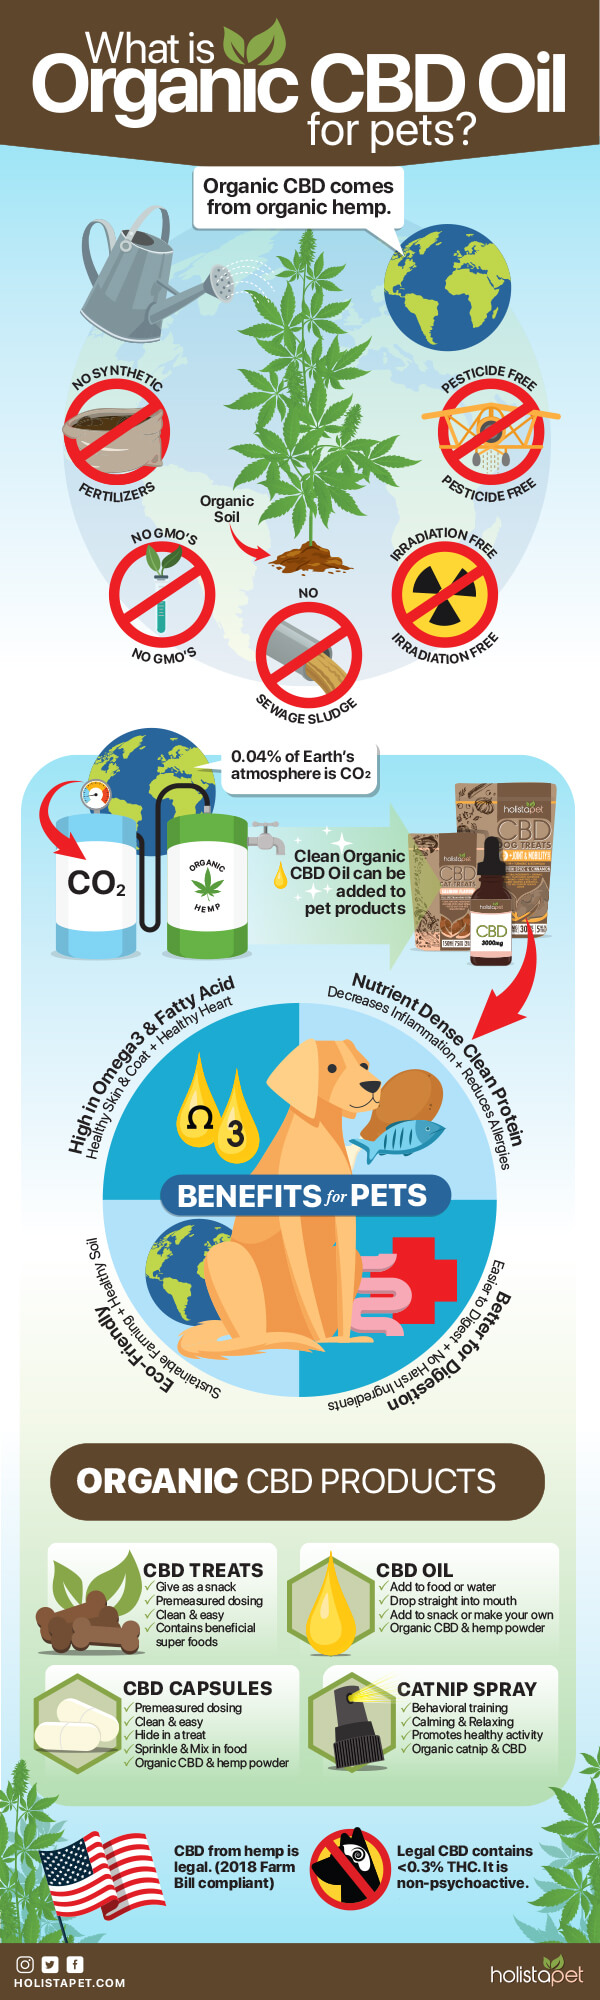 Organic-CBD-Oil-for-Dogs-infographic-plaza